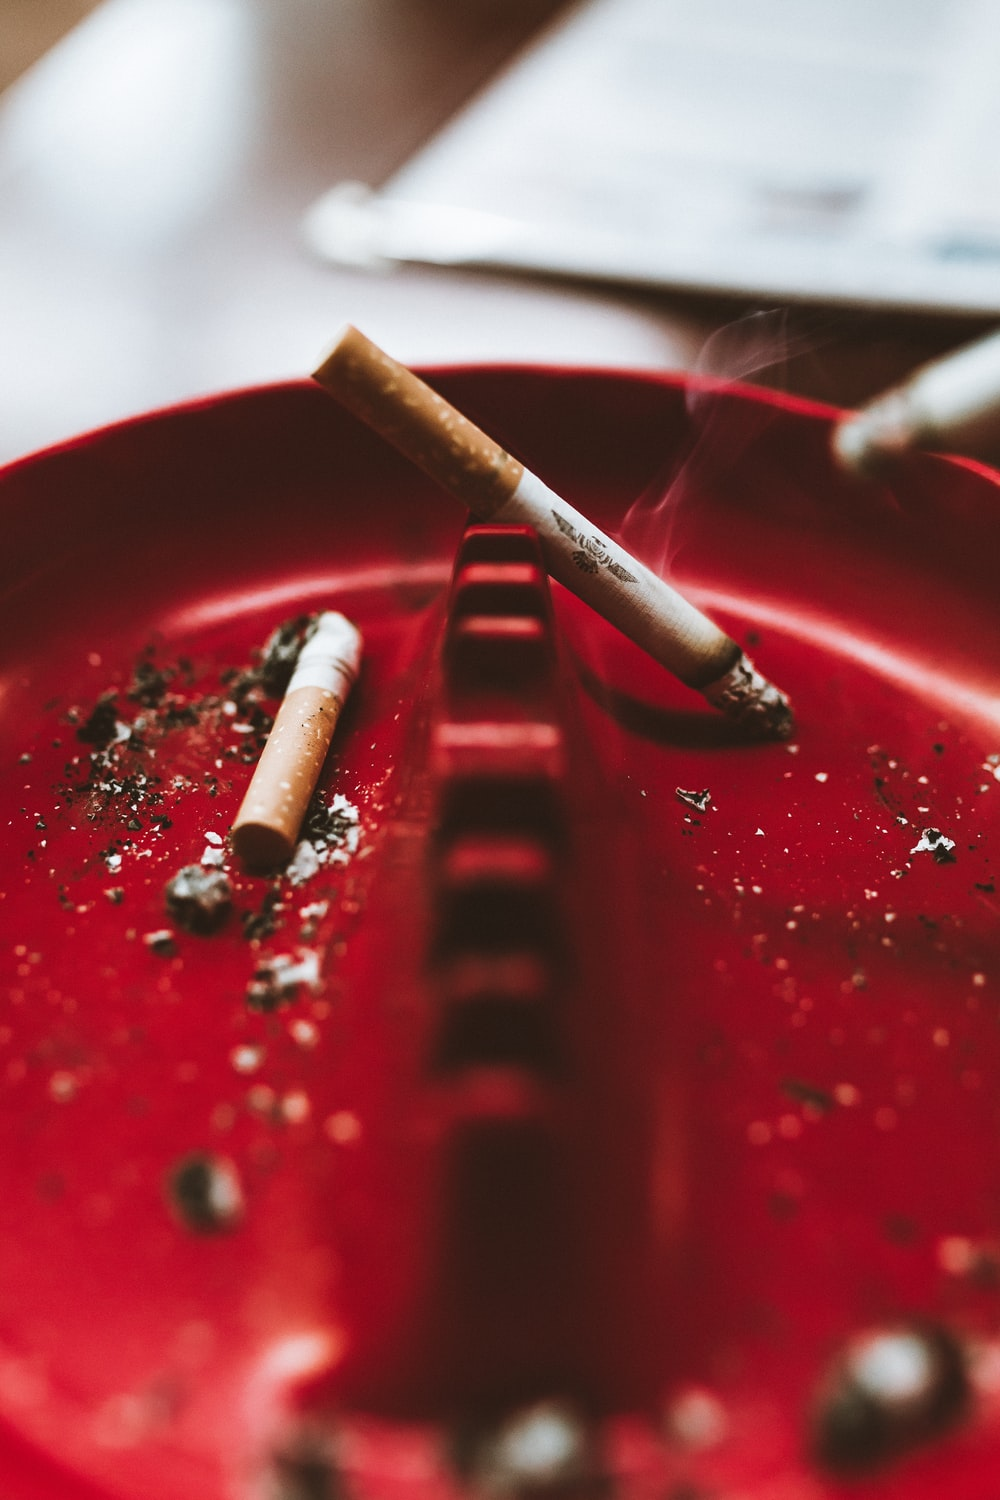 shallow focus photo of white cigarette stick on red ashtray